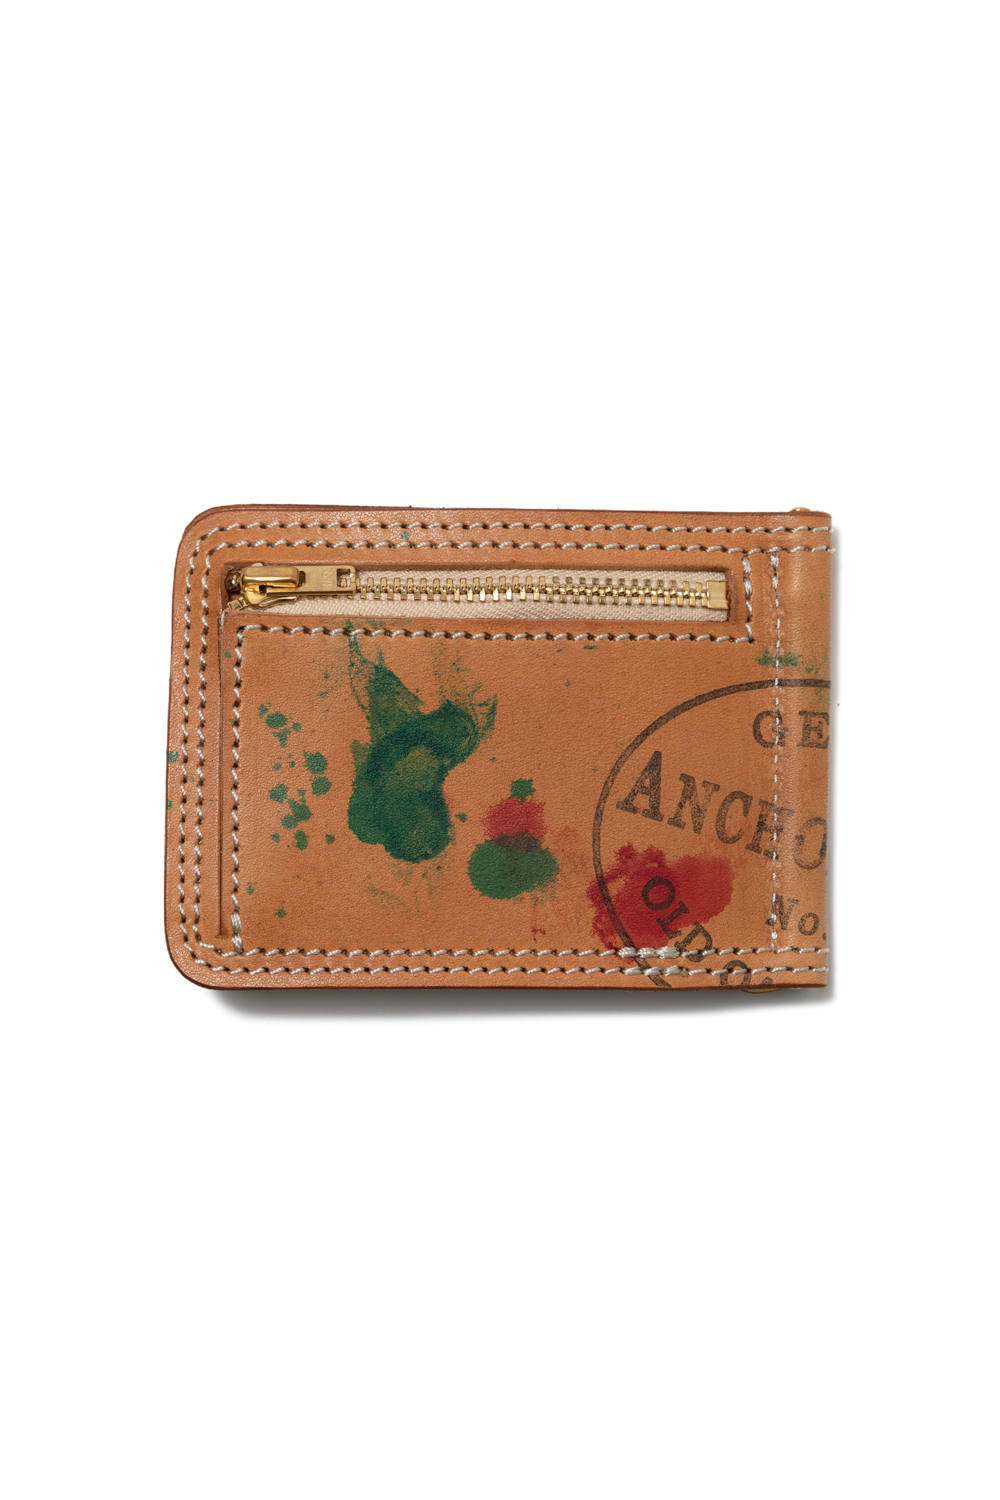 【19AW】ペイントレザーマネークリップ [ナチュラル] / PAINT LEATHER MONEY CLIP [NATURAL]